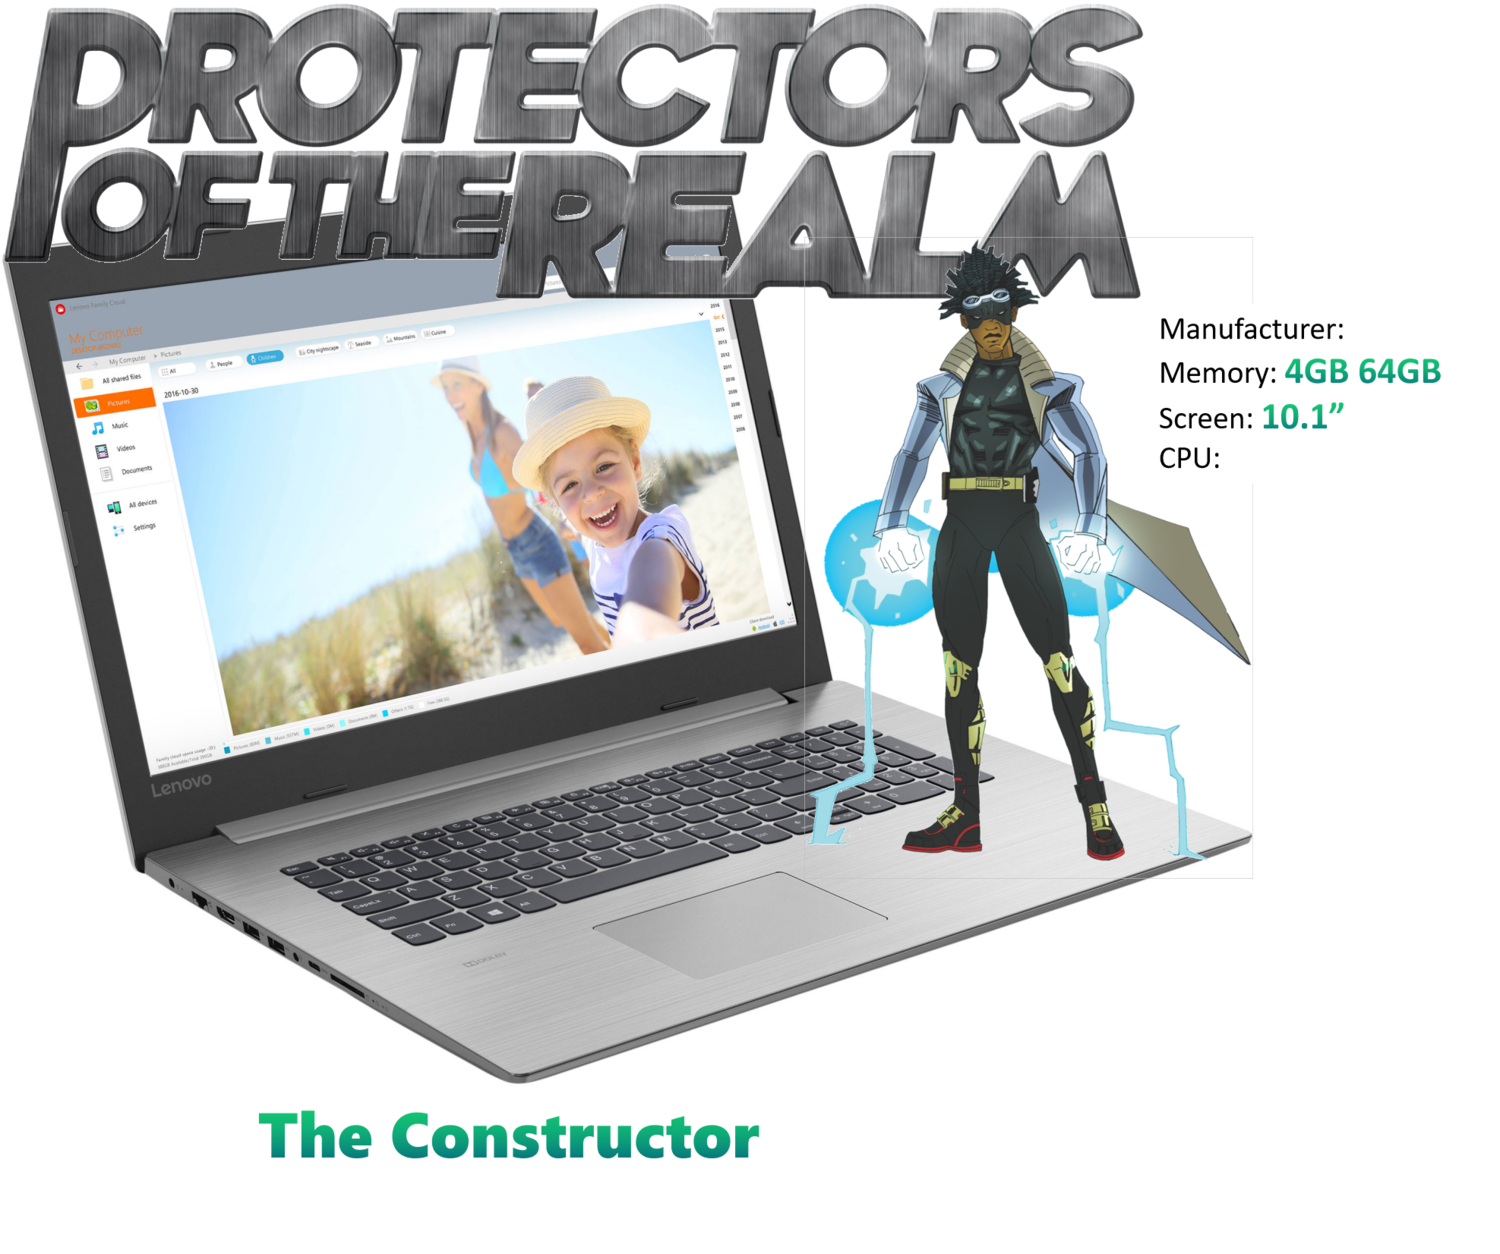 The Constructor